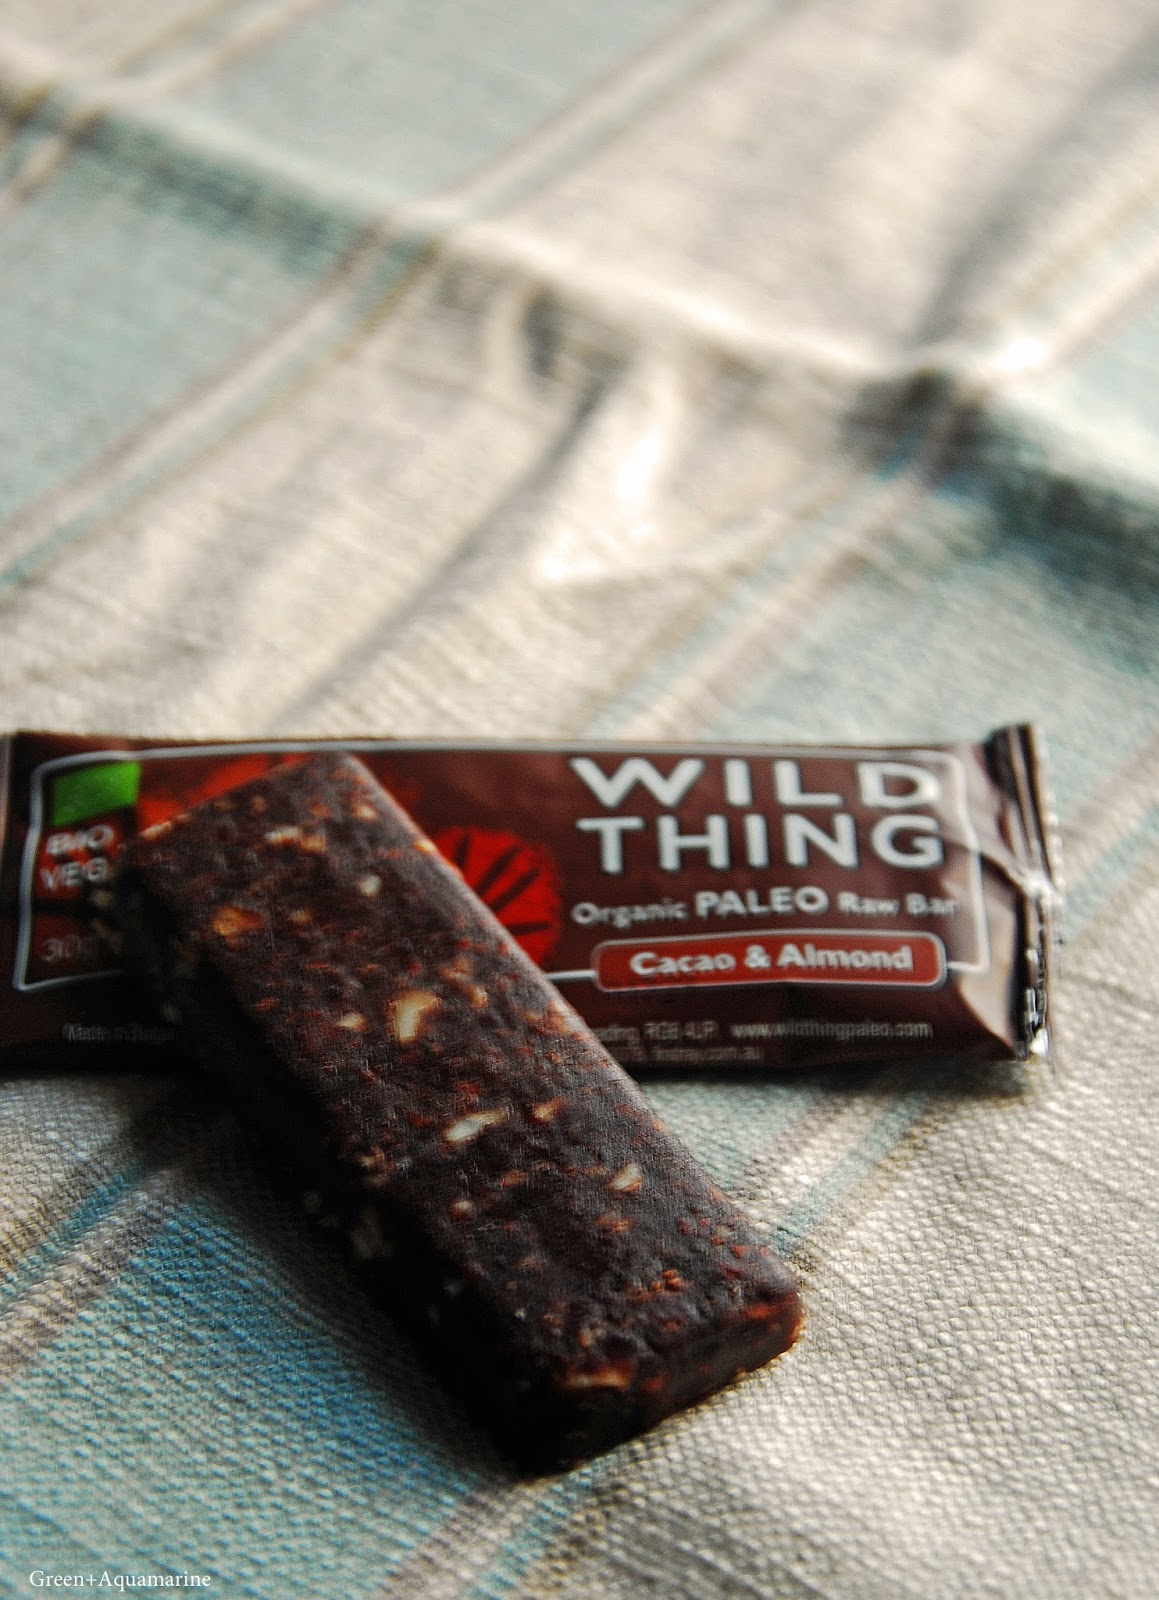 Trying the paleo organic and vegan Wild Thing bars. Via @eleanormayc